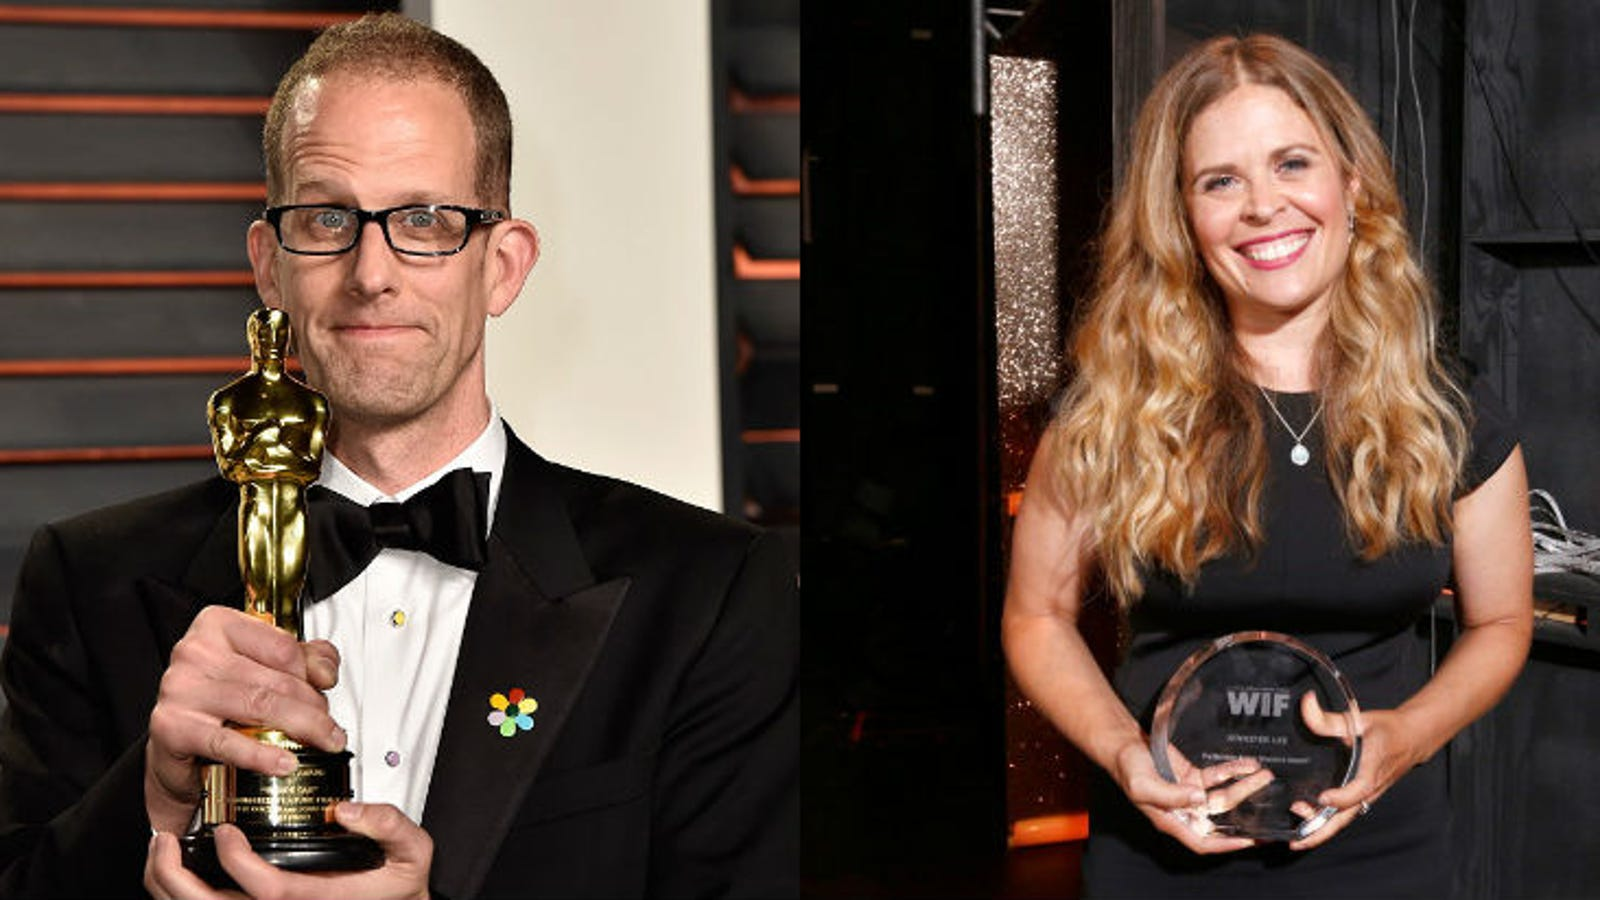 Jennifer Lee and Pete Docter Will Replace John Lasseter as Disney and Pixar's New Heads